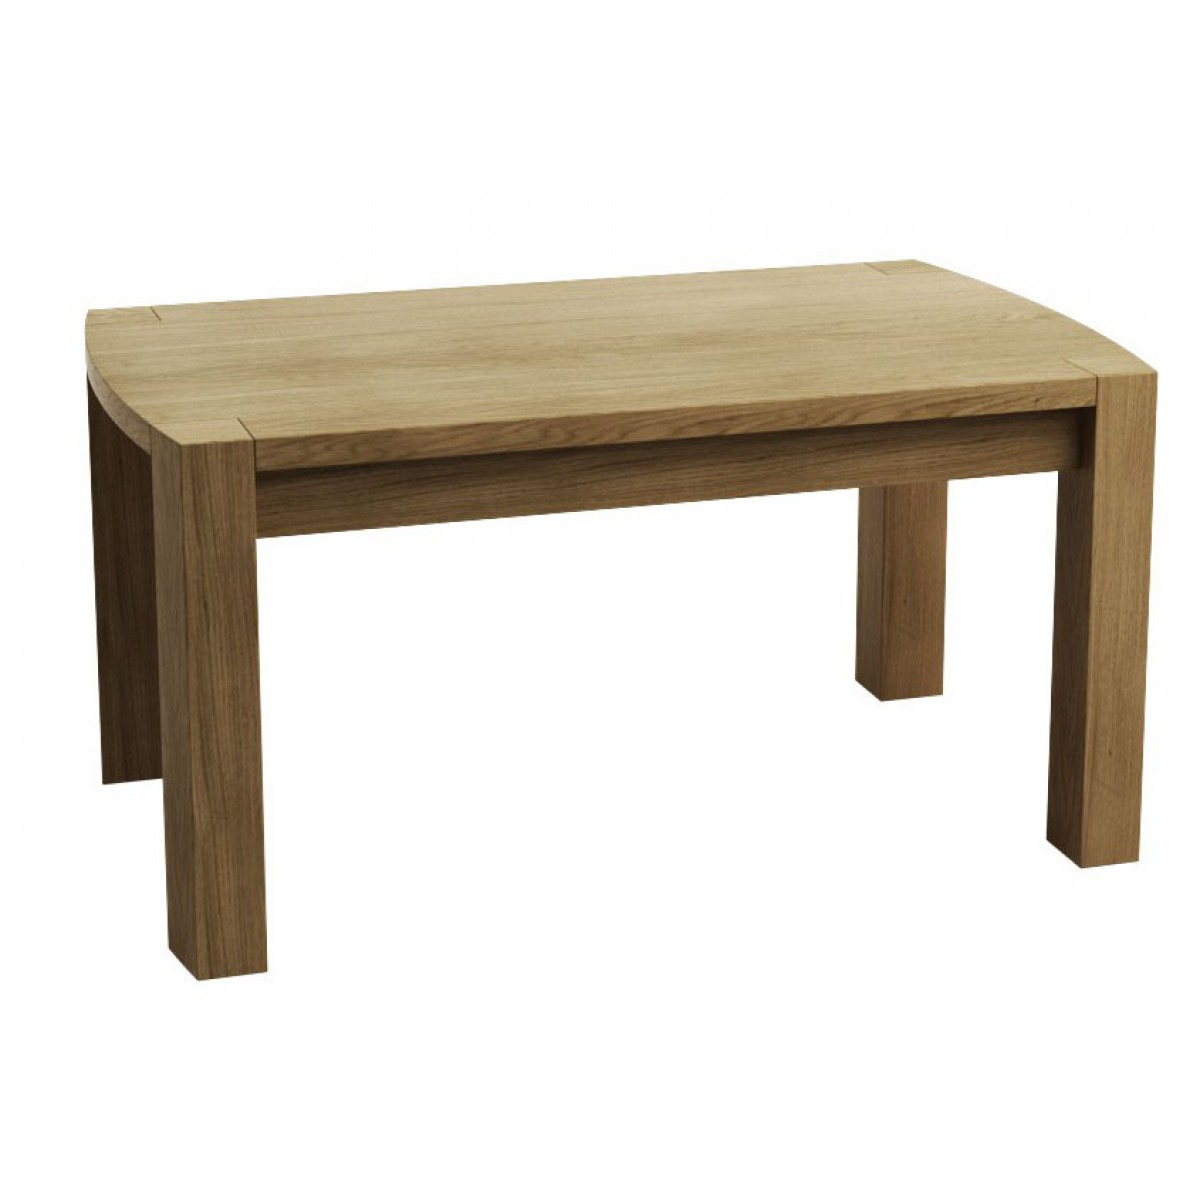 Goliath coffee table - Goliath console table ...